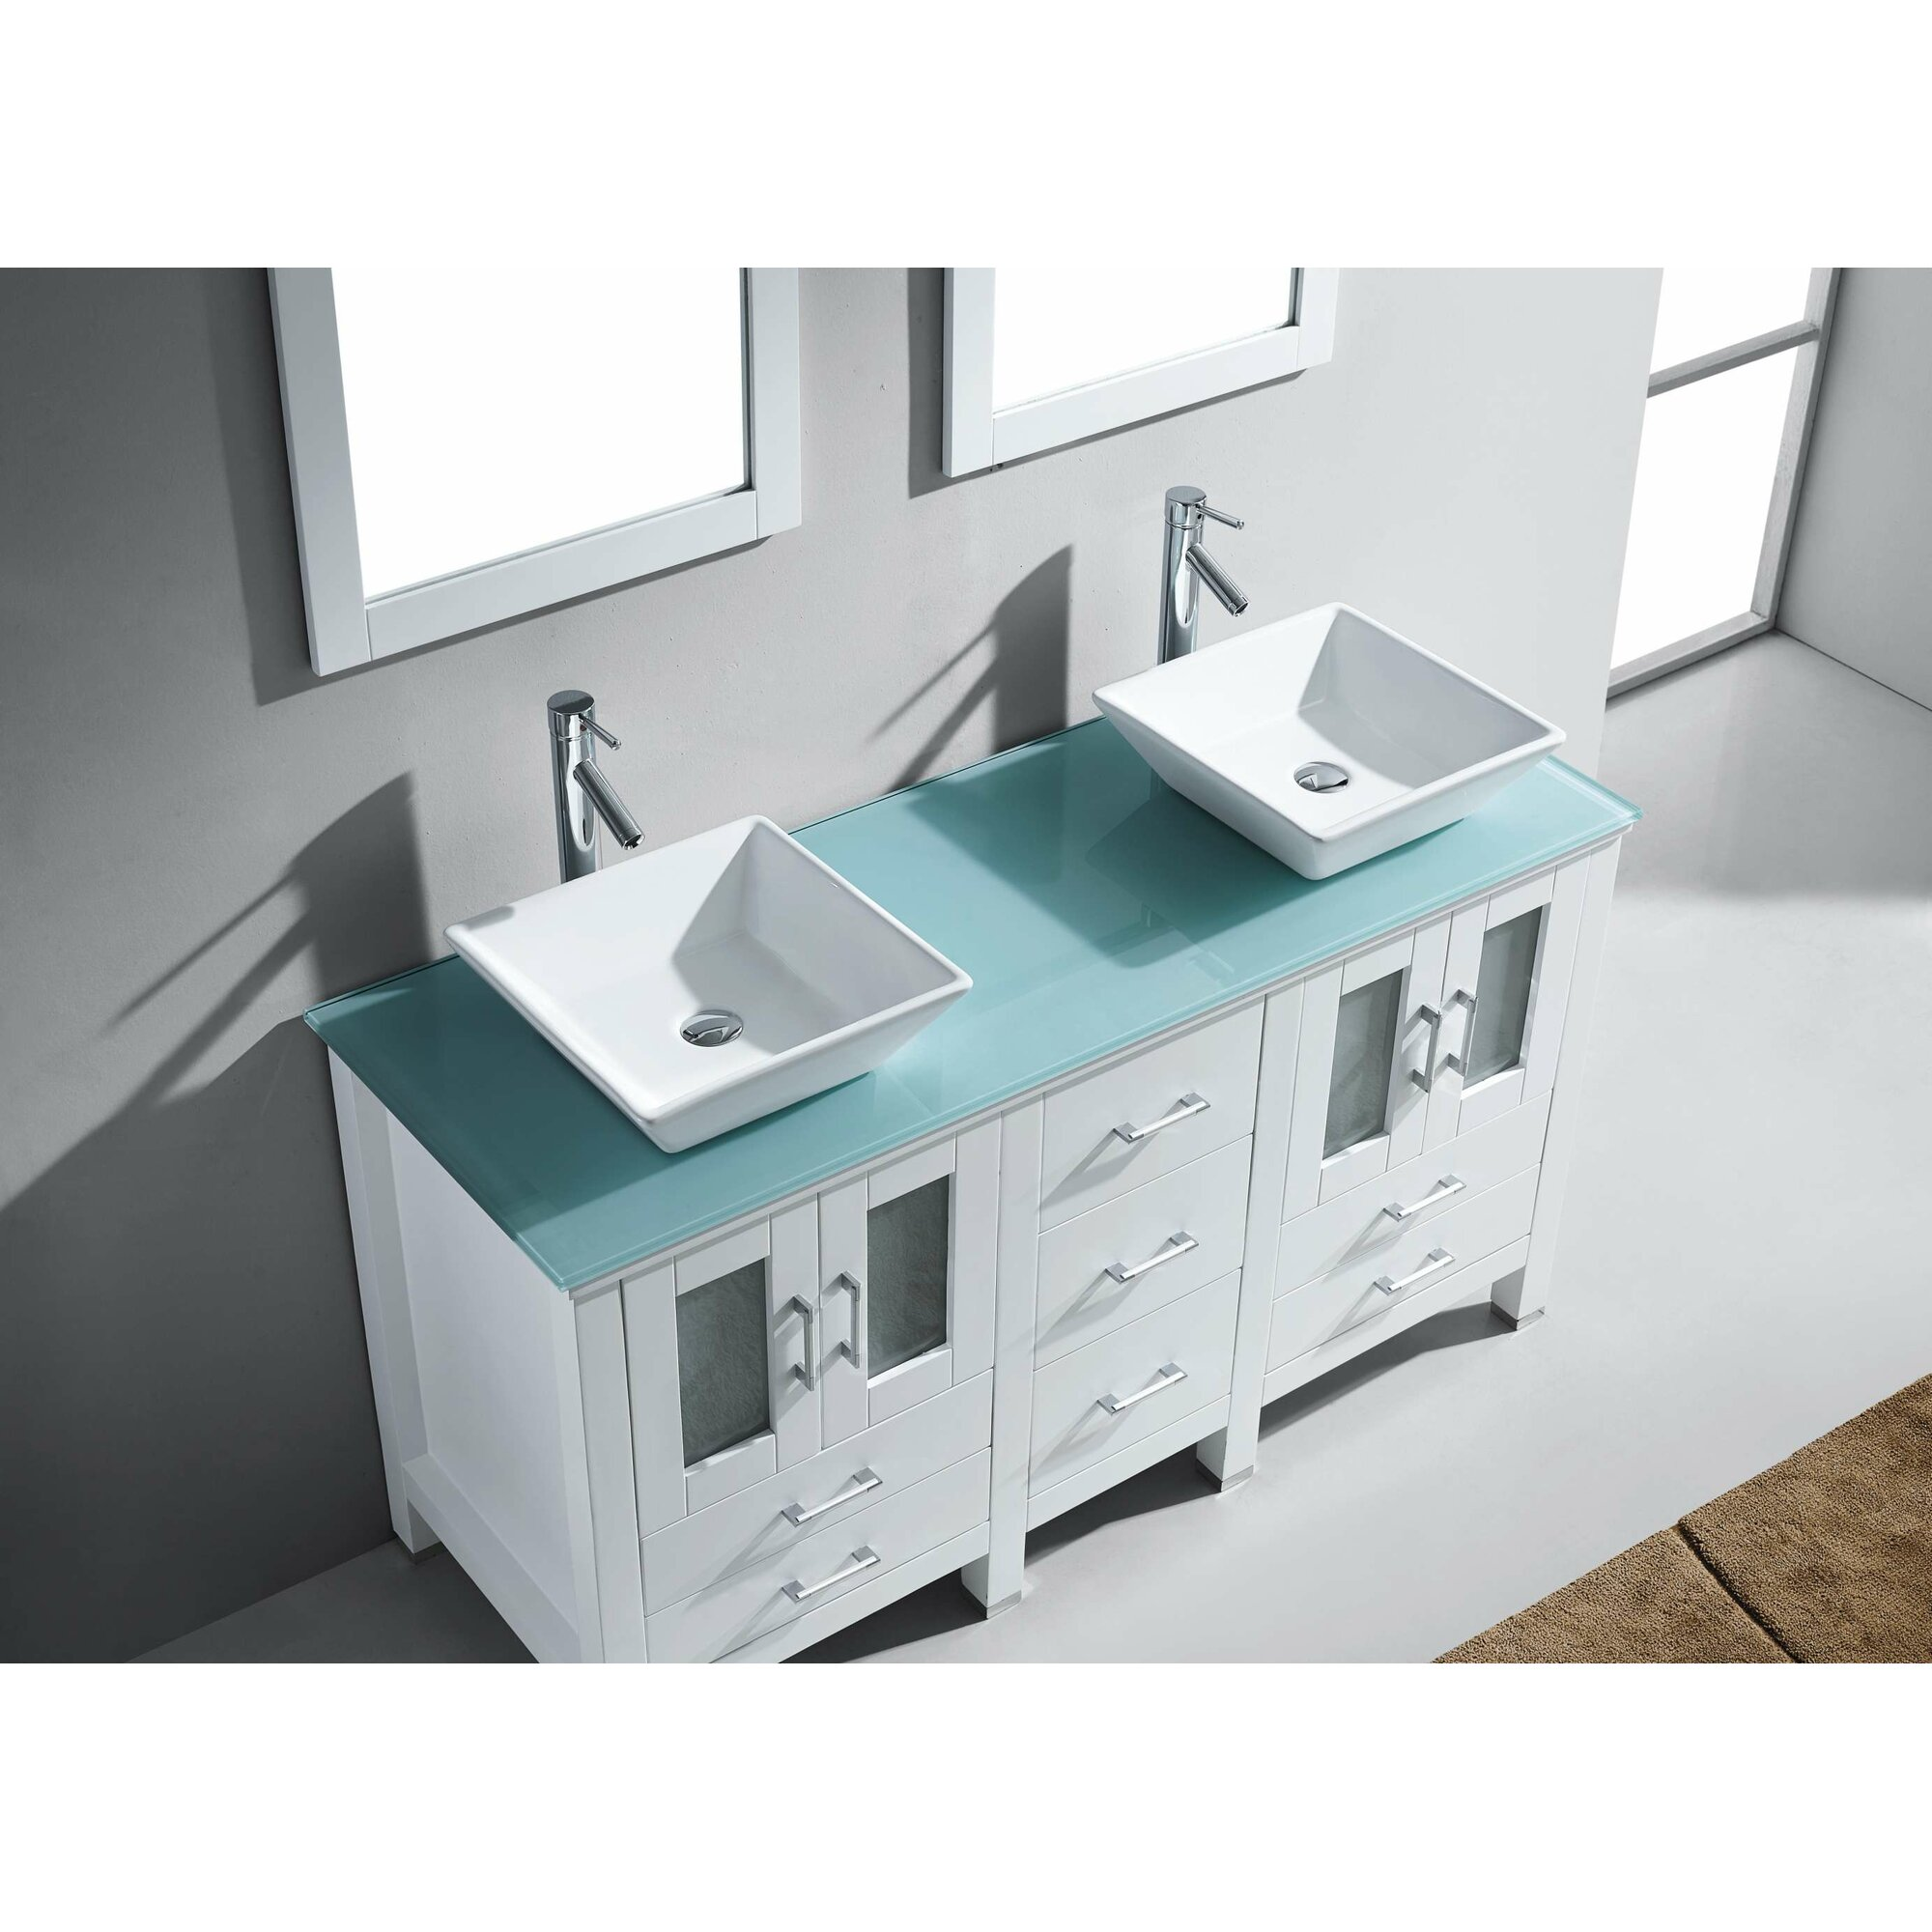 Bathroom Vanities Rochester Ny bathroom vanities rochester ny ~ instavanity